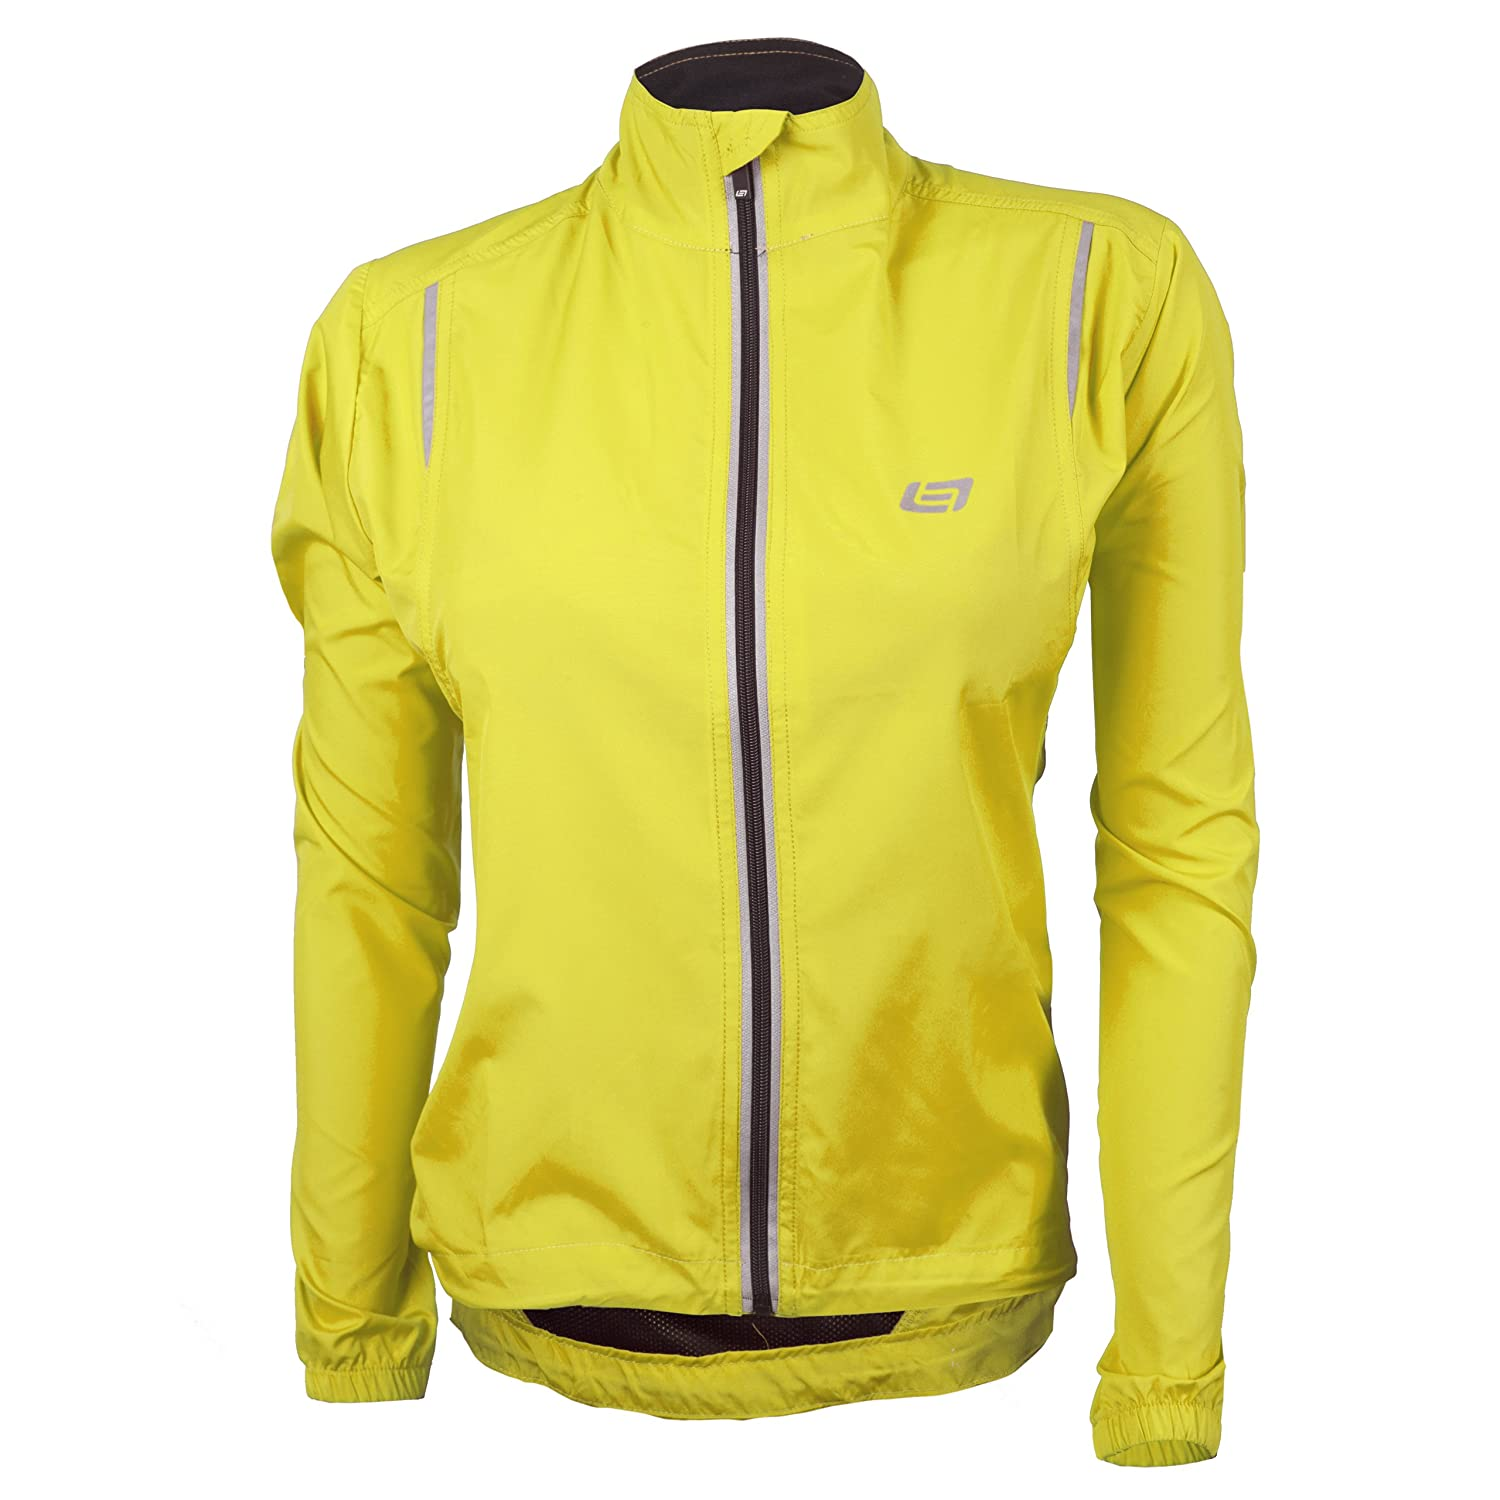 Bellwether 2015/16 Women's Velocity Cycling Jacket - 3518